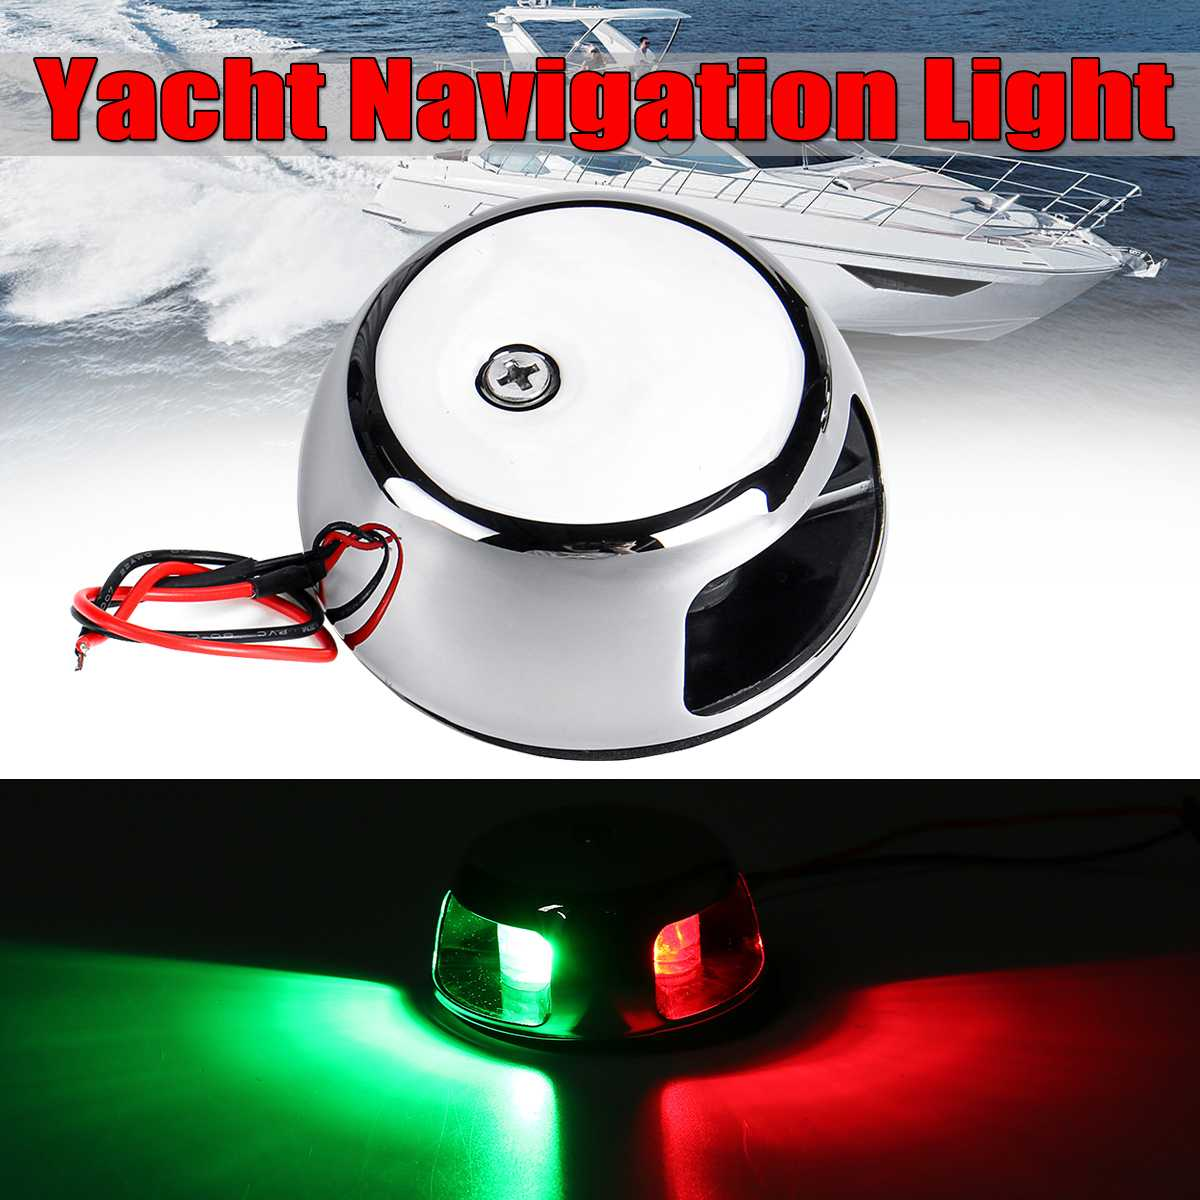 2W 12V LED Light Universal LED Navigation Light Lamps For Marine Boat Yacht Red + Green Sailing Signal Light Stainless Steel